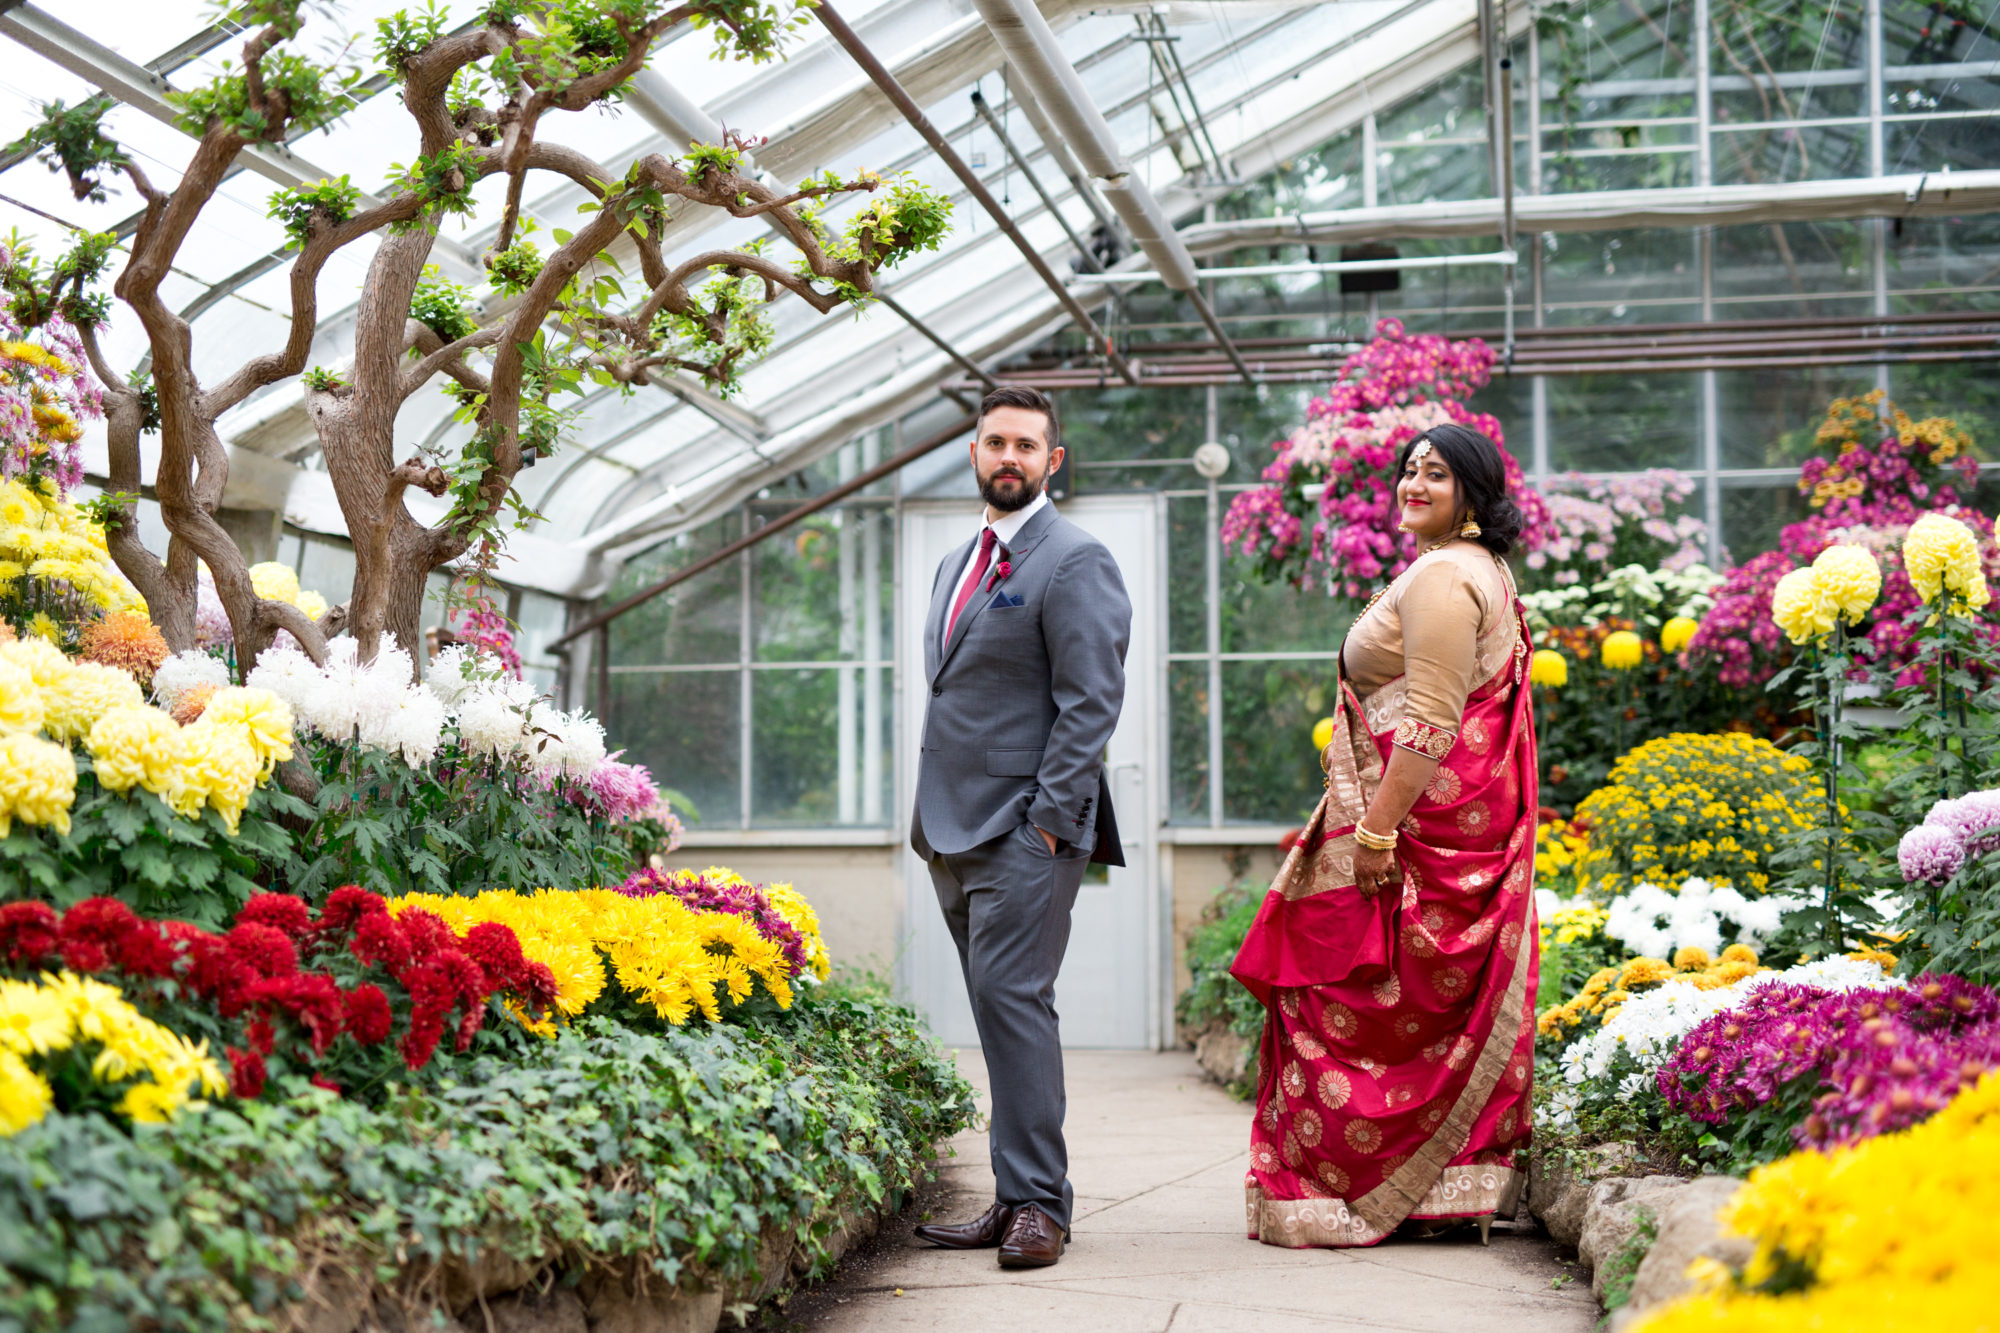 Greenhouse Portrait Bride Groom Indian Wedding Zsuzsi Pal Photography